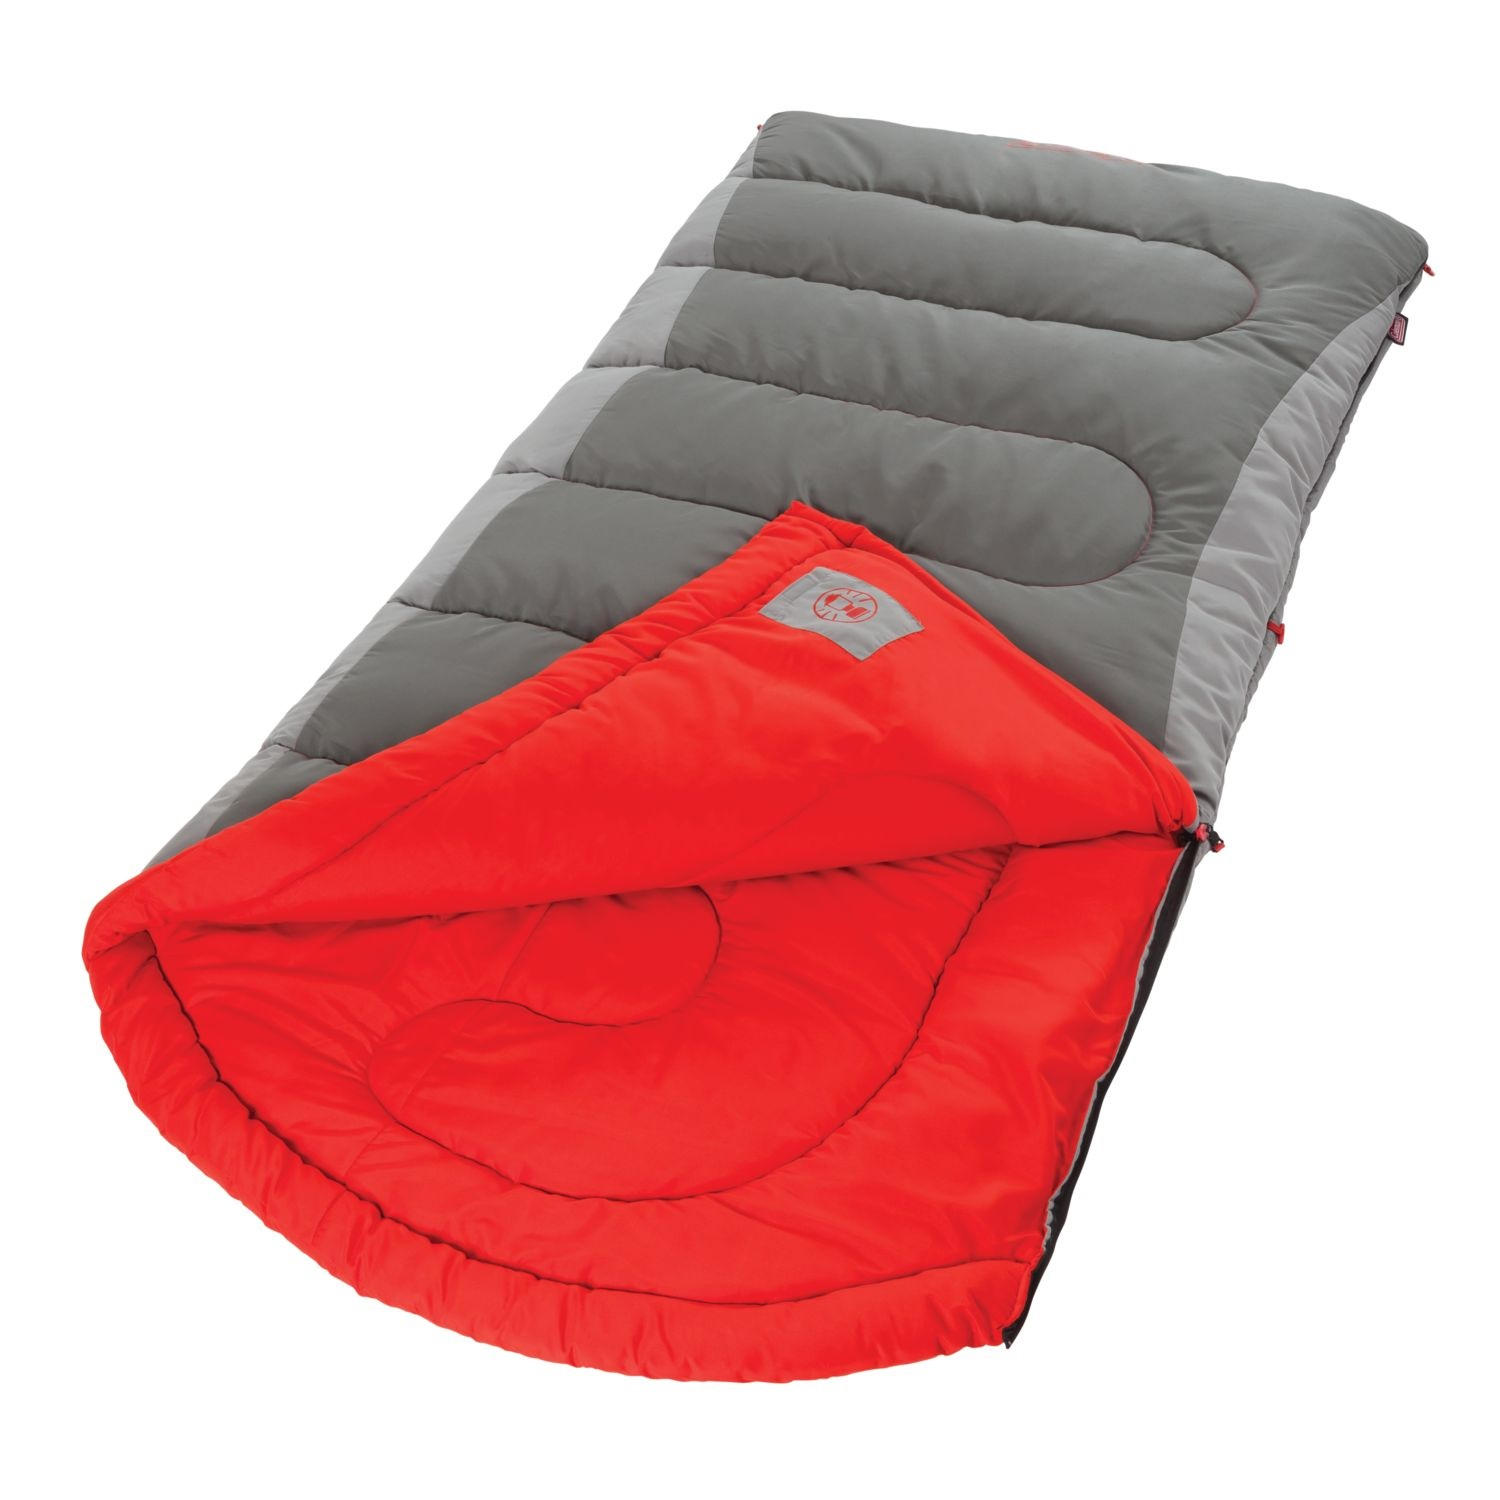 Coleman Dexter Point 50 Contoured Sleeping Bag Big and Tall by COLEMAN